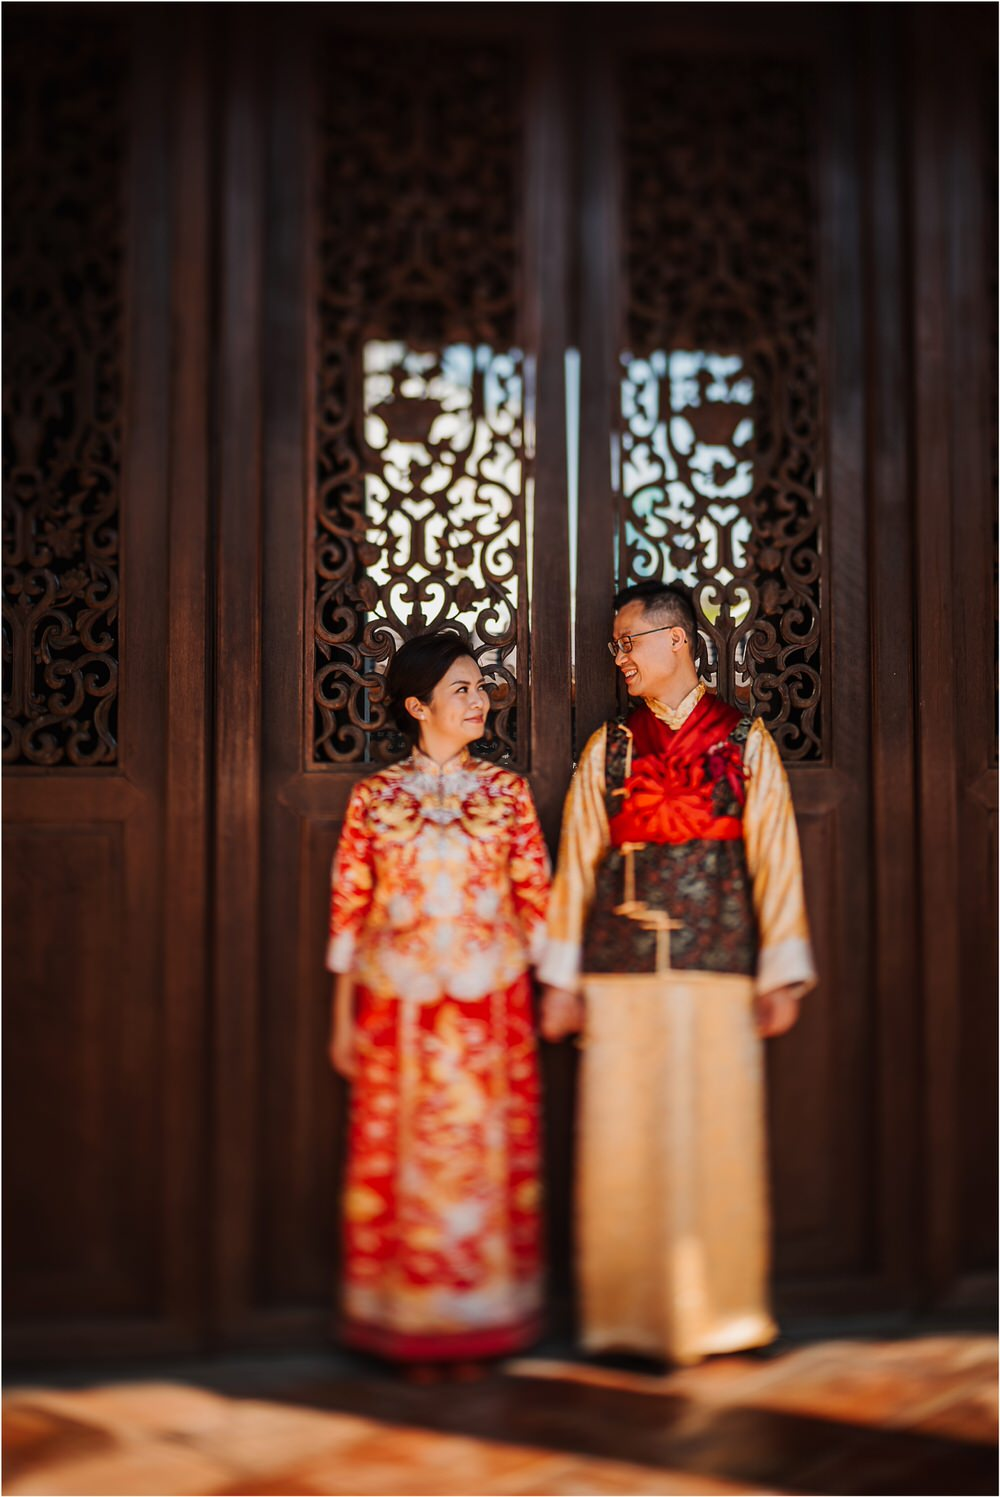 hong kong wedding photographer intercontinental kowloon chinese tea ceremony traditional wedding photography 0091.jpg